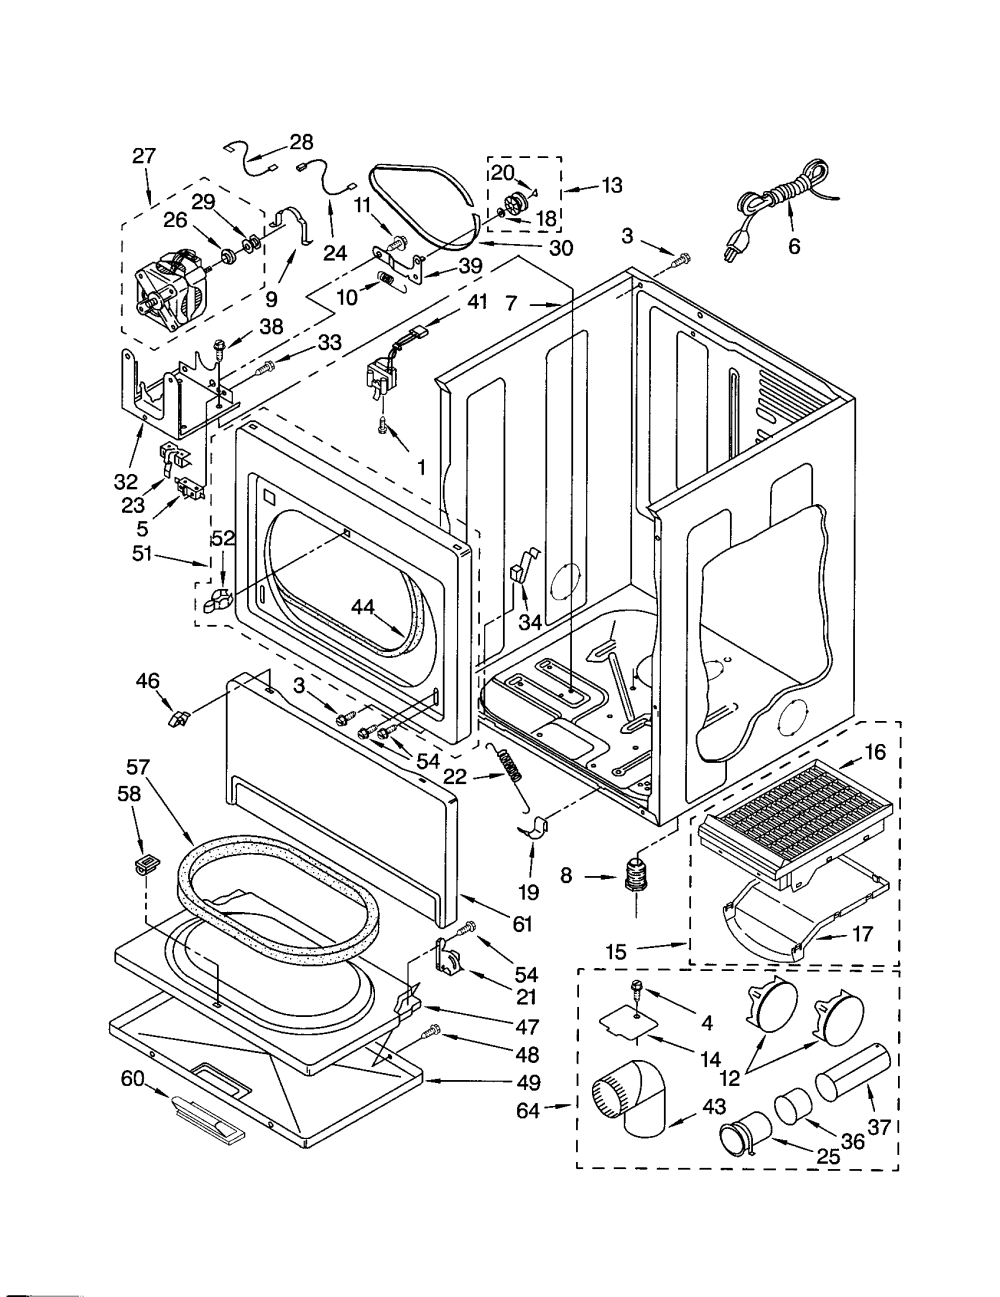 medium resolution of wiring diagram for kenmore heating element 3387747 wiring diagrams wiring diagram for kenmore heating element 3387747